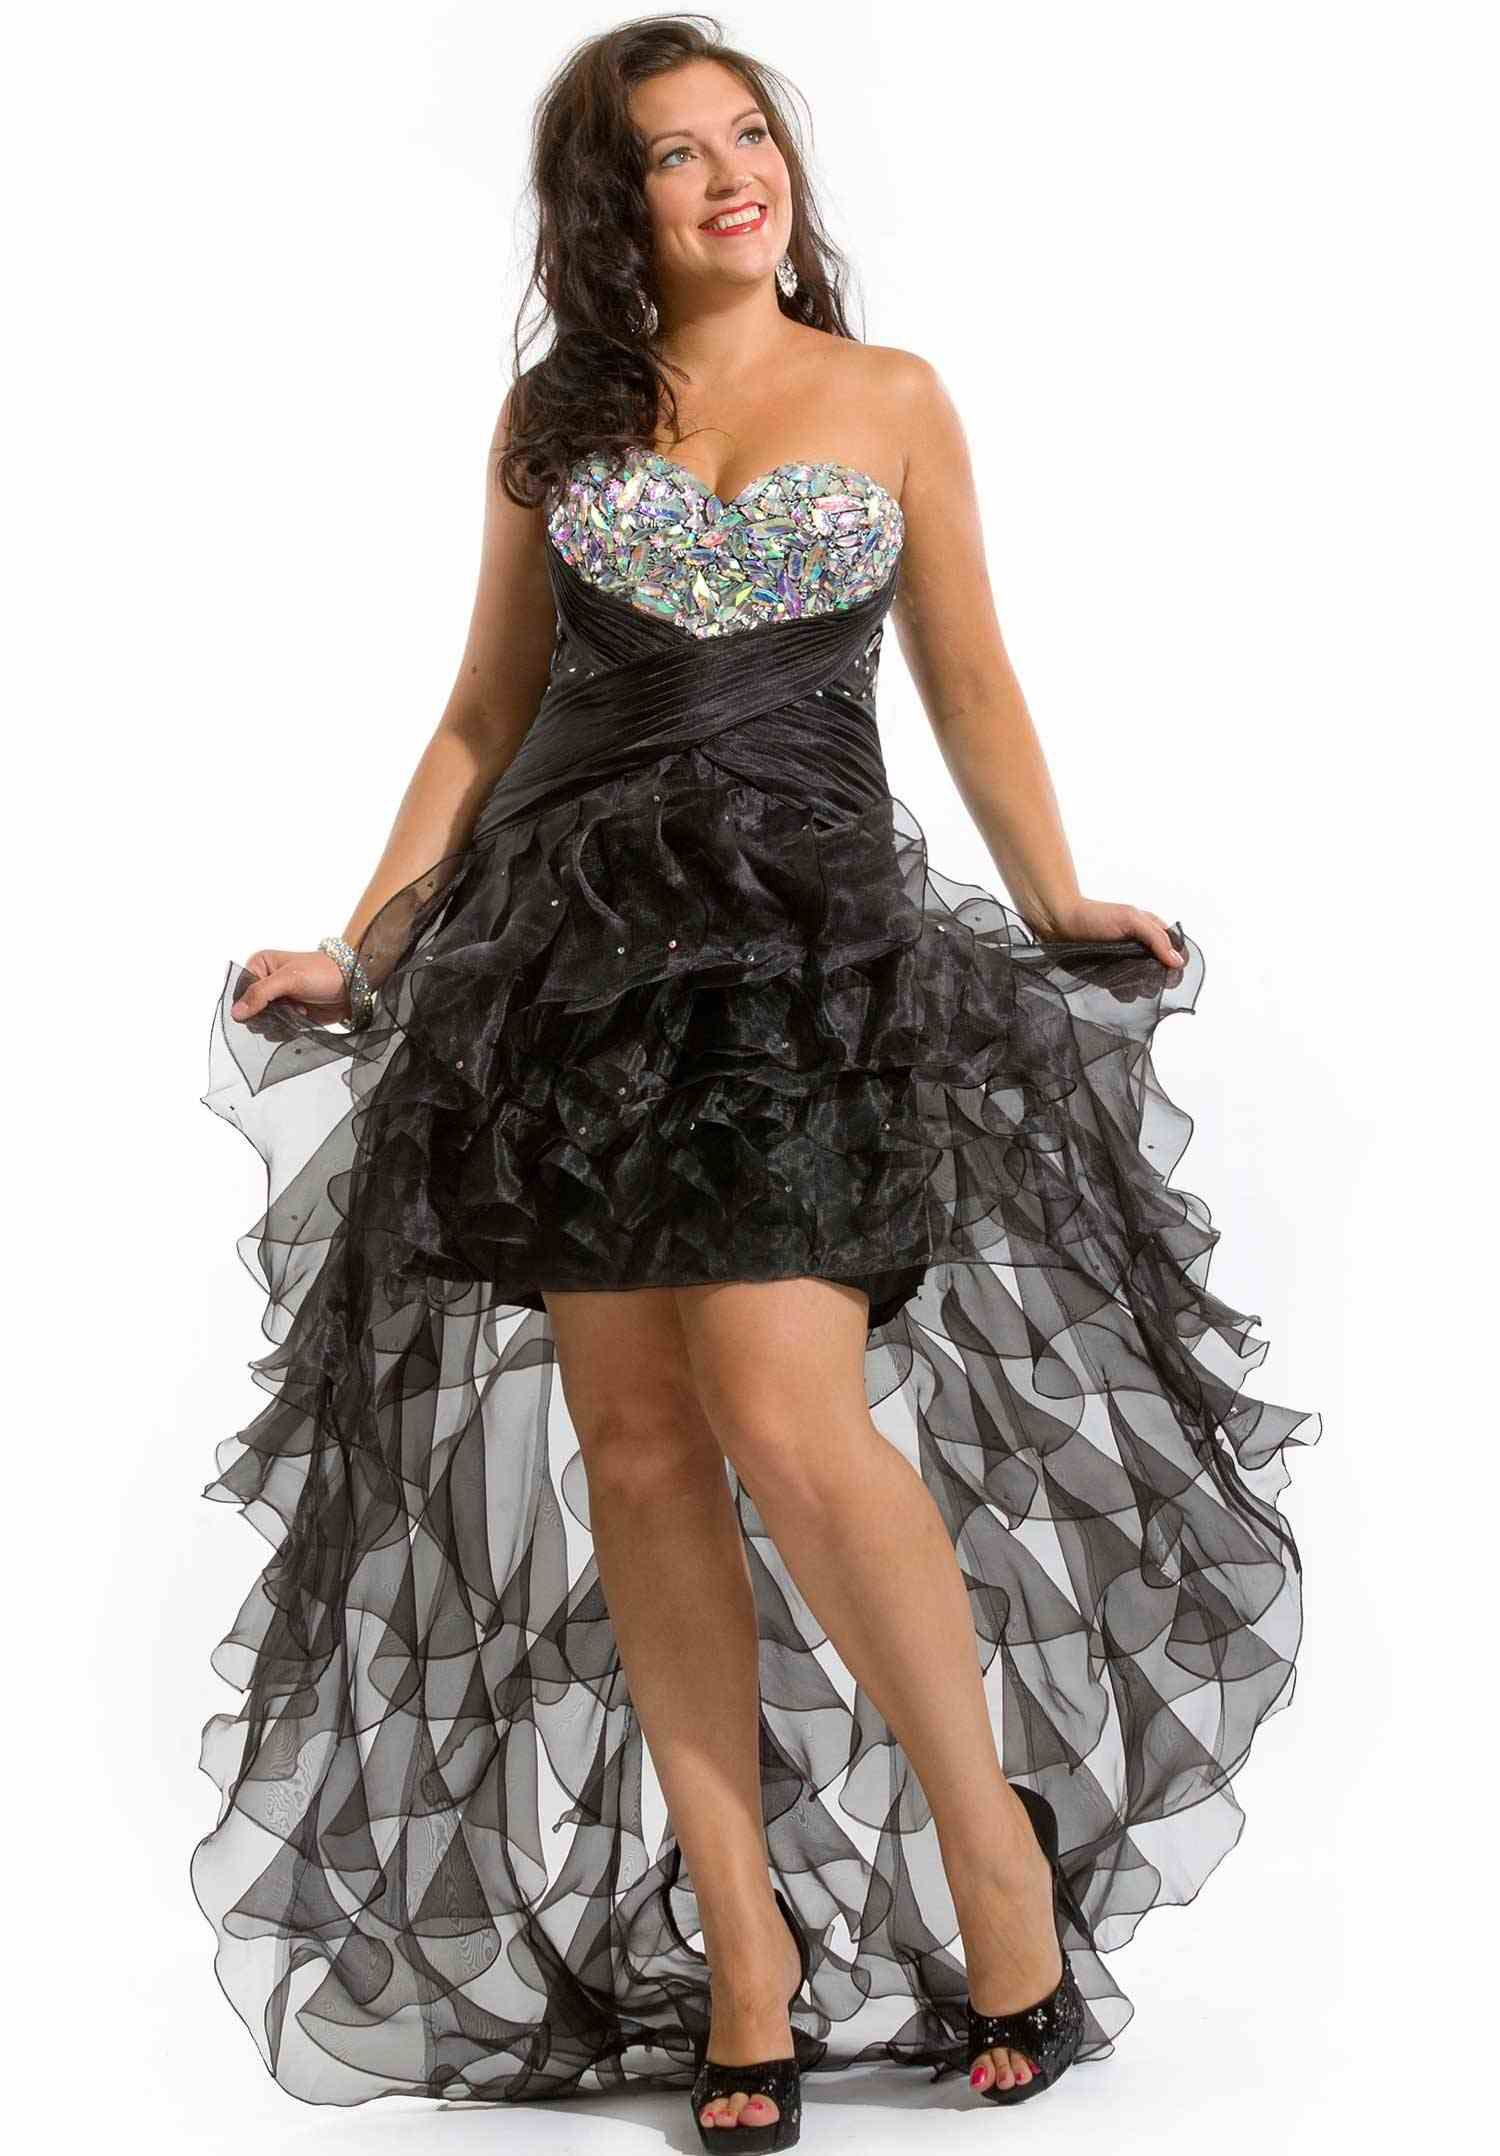 20 Perfect Plus Size Homecoming Dresses for Girls | Homecoming ...